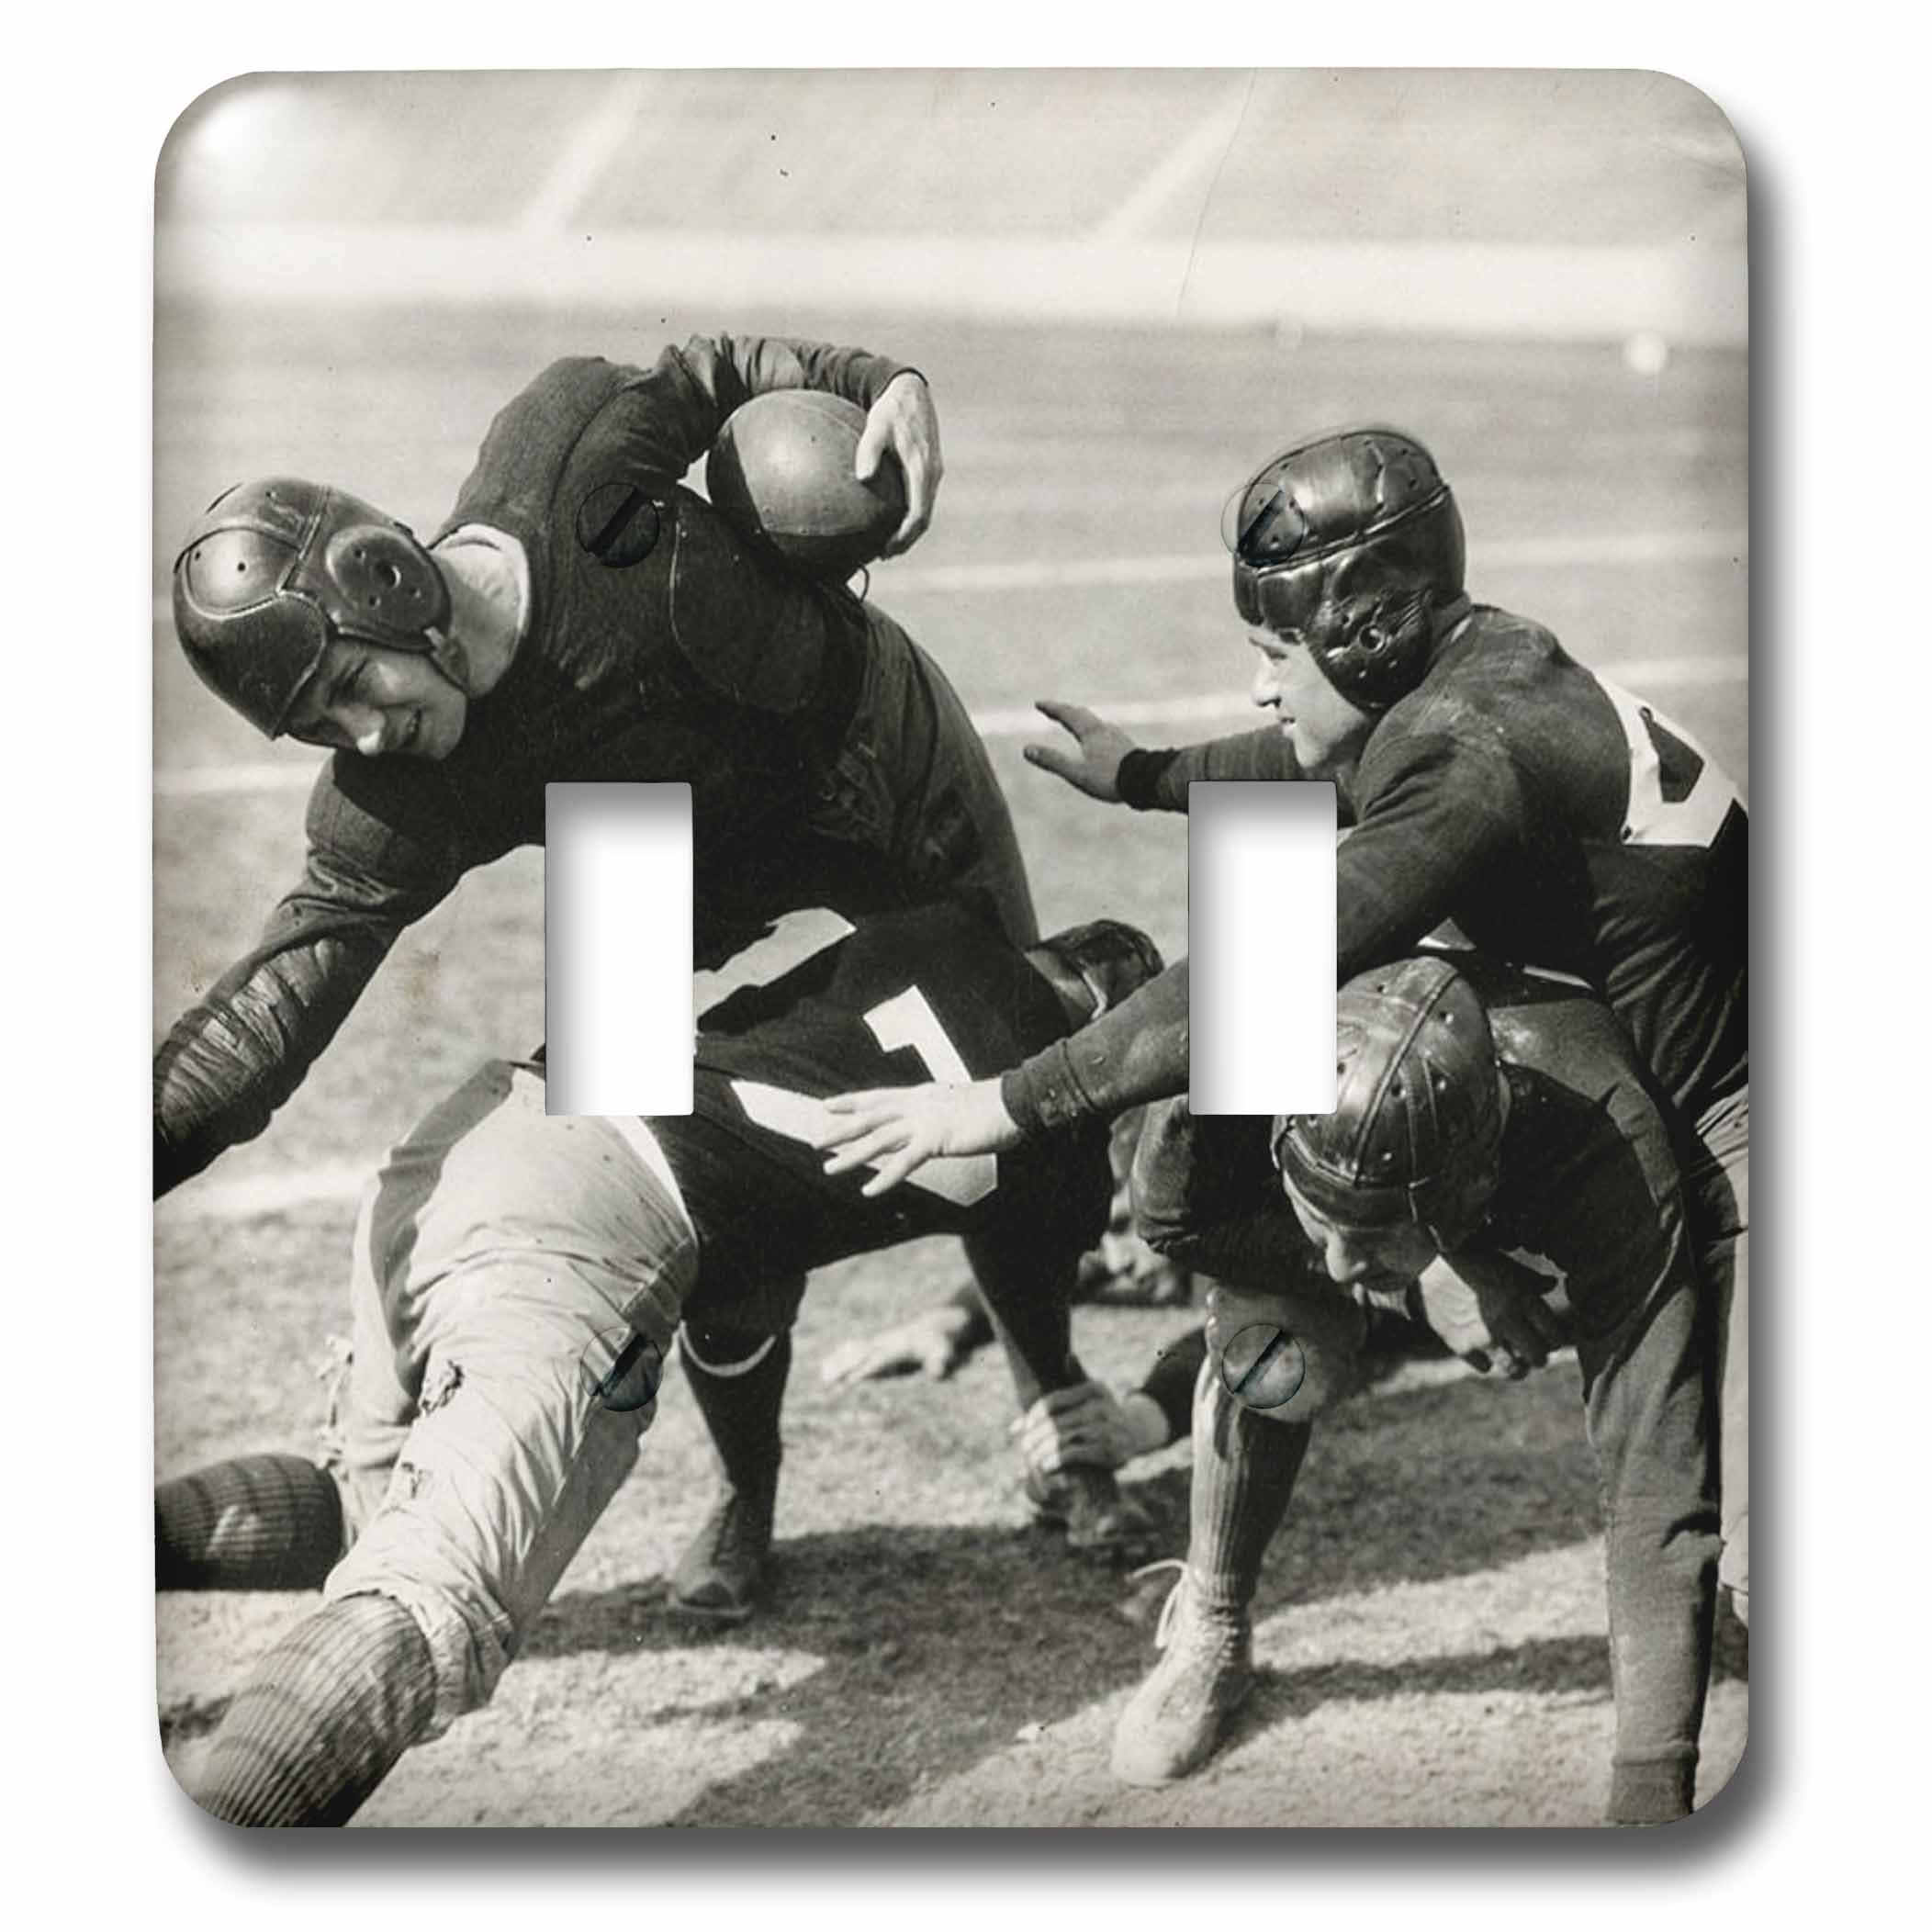 3dRose Scenes from the Past Vintage Stereoview Cards - 1928 Stereoview Image Hold Em College Football Silent Film Still - Light Switch Covers - double toggle switch (lsp_269974_2)